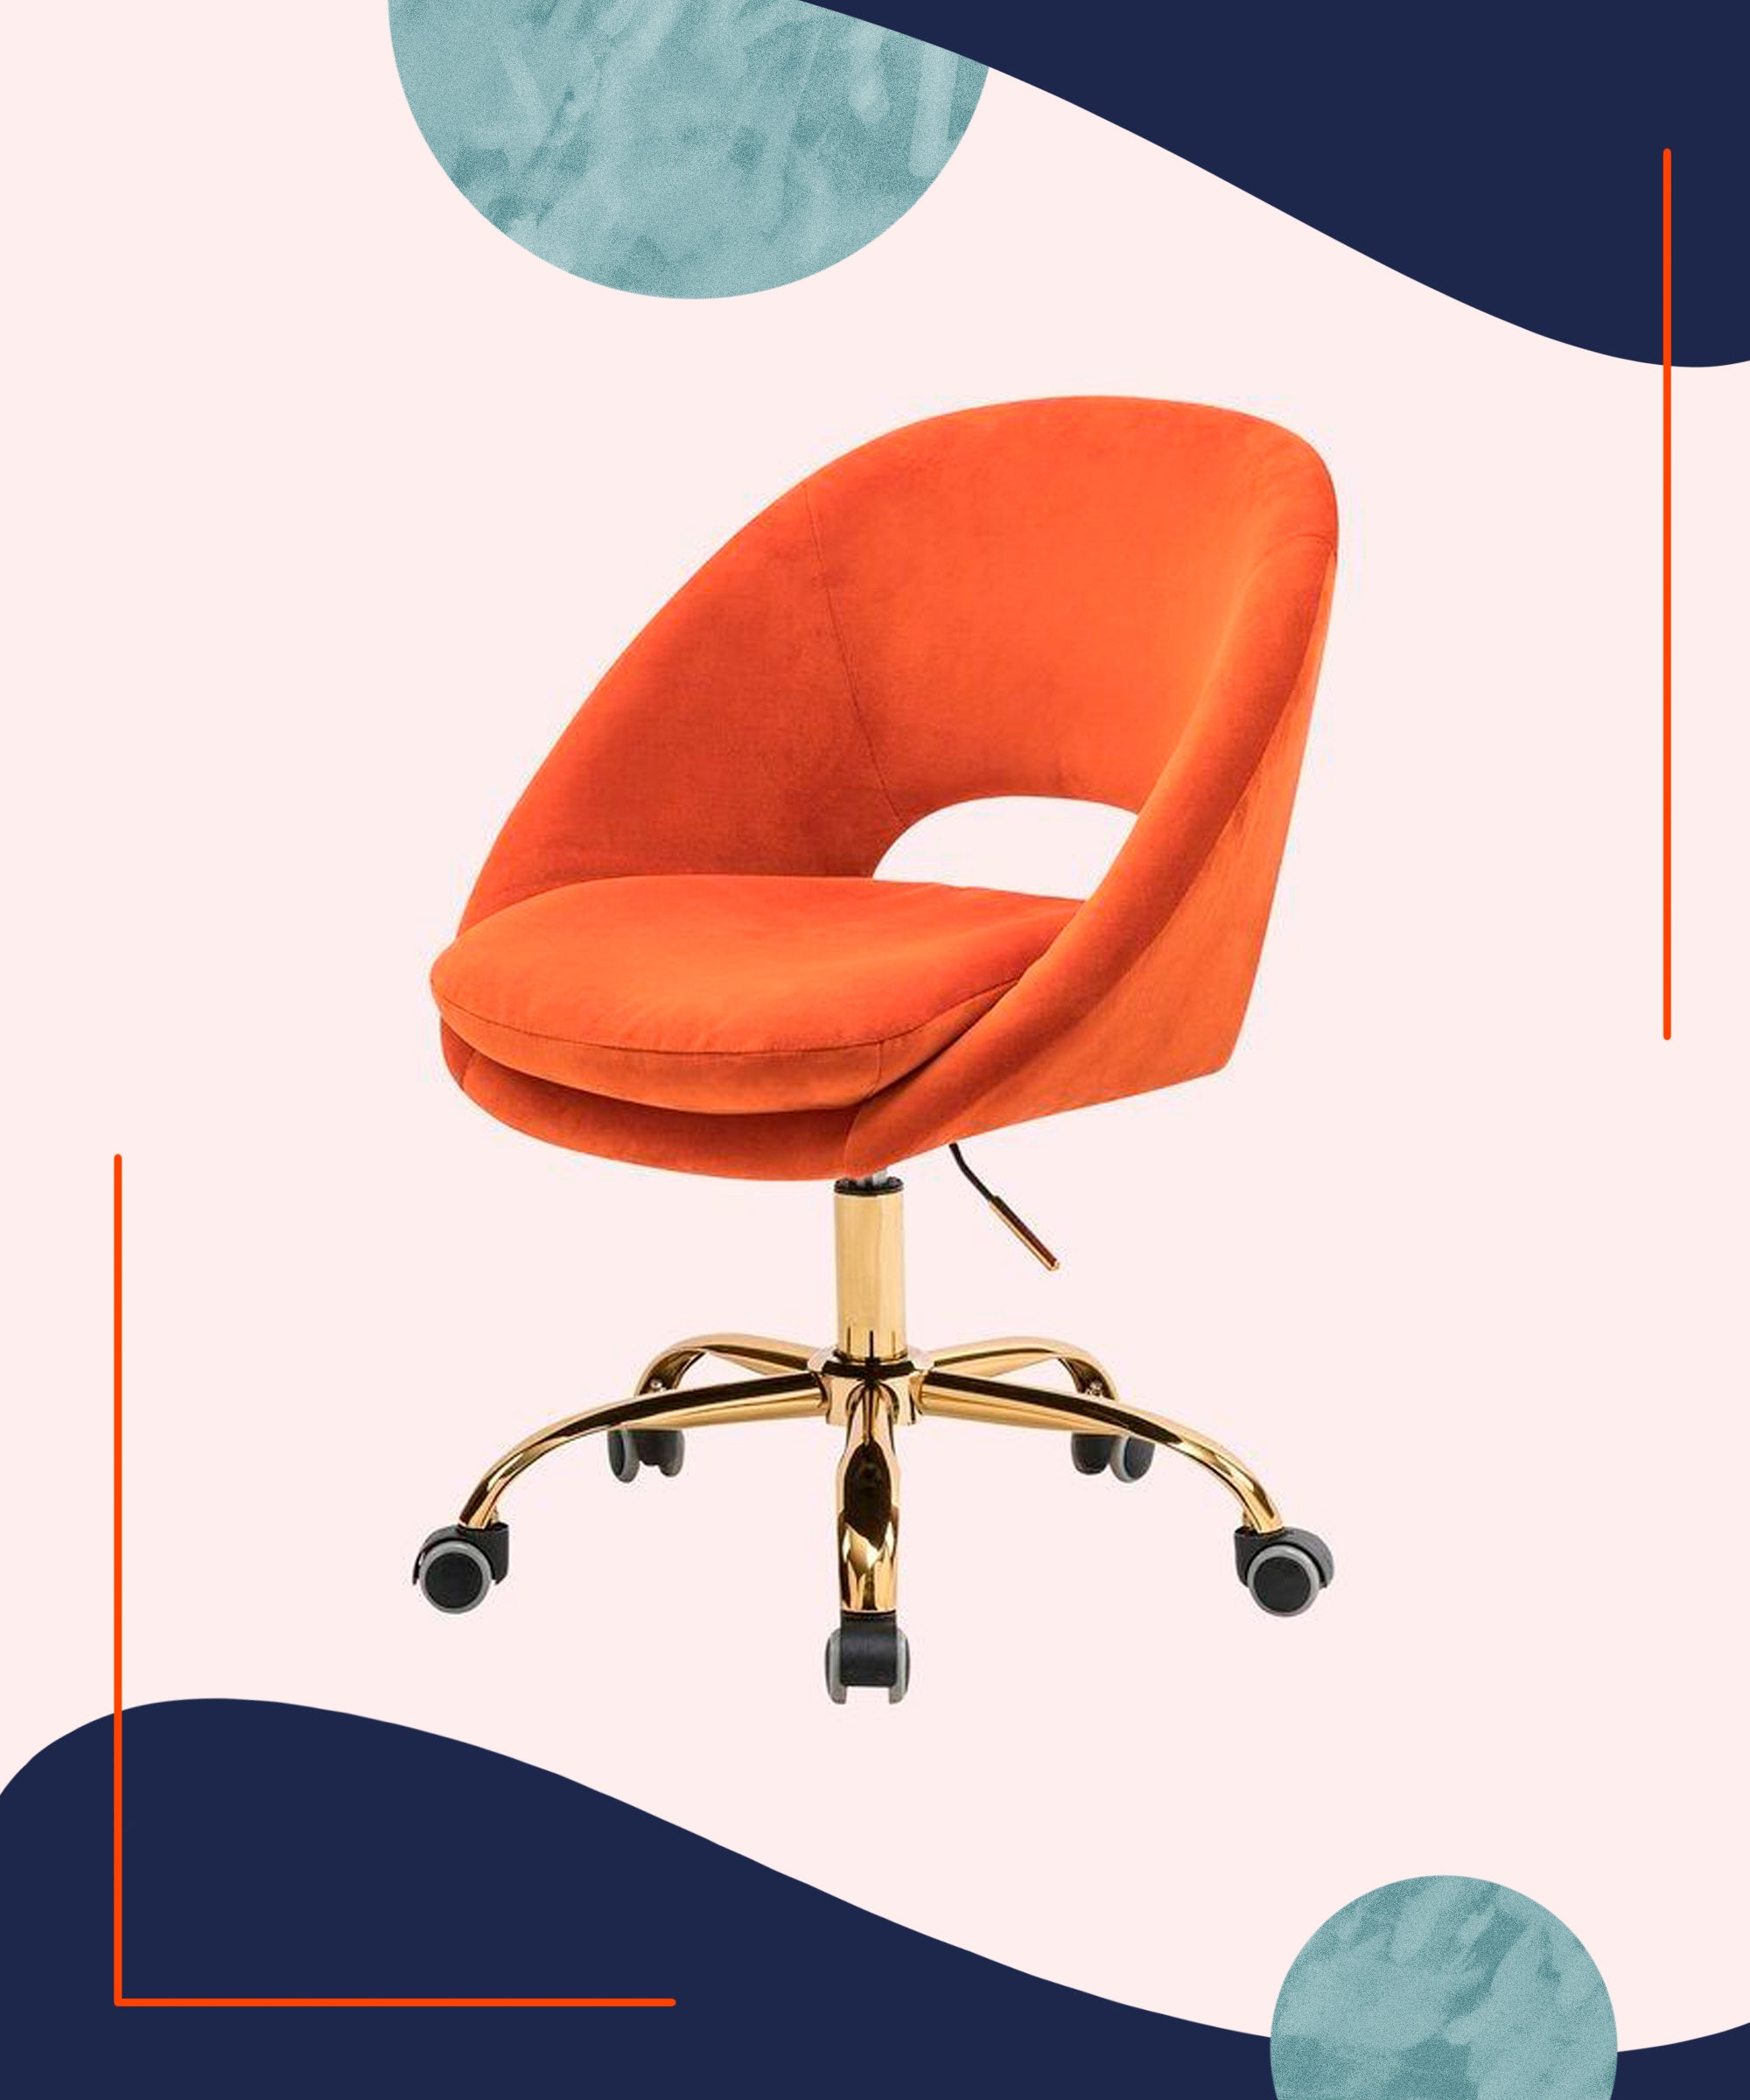 [%way Day Up To 80% Off Home Office Chairs & Desks 2020 Intended For Trendy Brister Swivel Side Chairs|brister Swivel Side Chairs For Fashionable Way Day Up To 80% Off Home Office Chairs & Desks 2020|most Recently Released Brister Swivel Side Chairs Regarding Way Day Up To 80% Off Home Office Chairs & Desks 2020|2019 Way Day Up To 80% Off Home Office Chairs & Desks 2020 Intended For Brister Swivel Side Chairs%] (View 16 of 20)